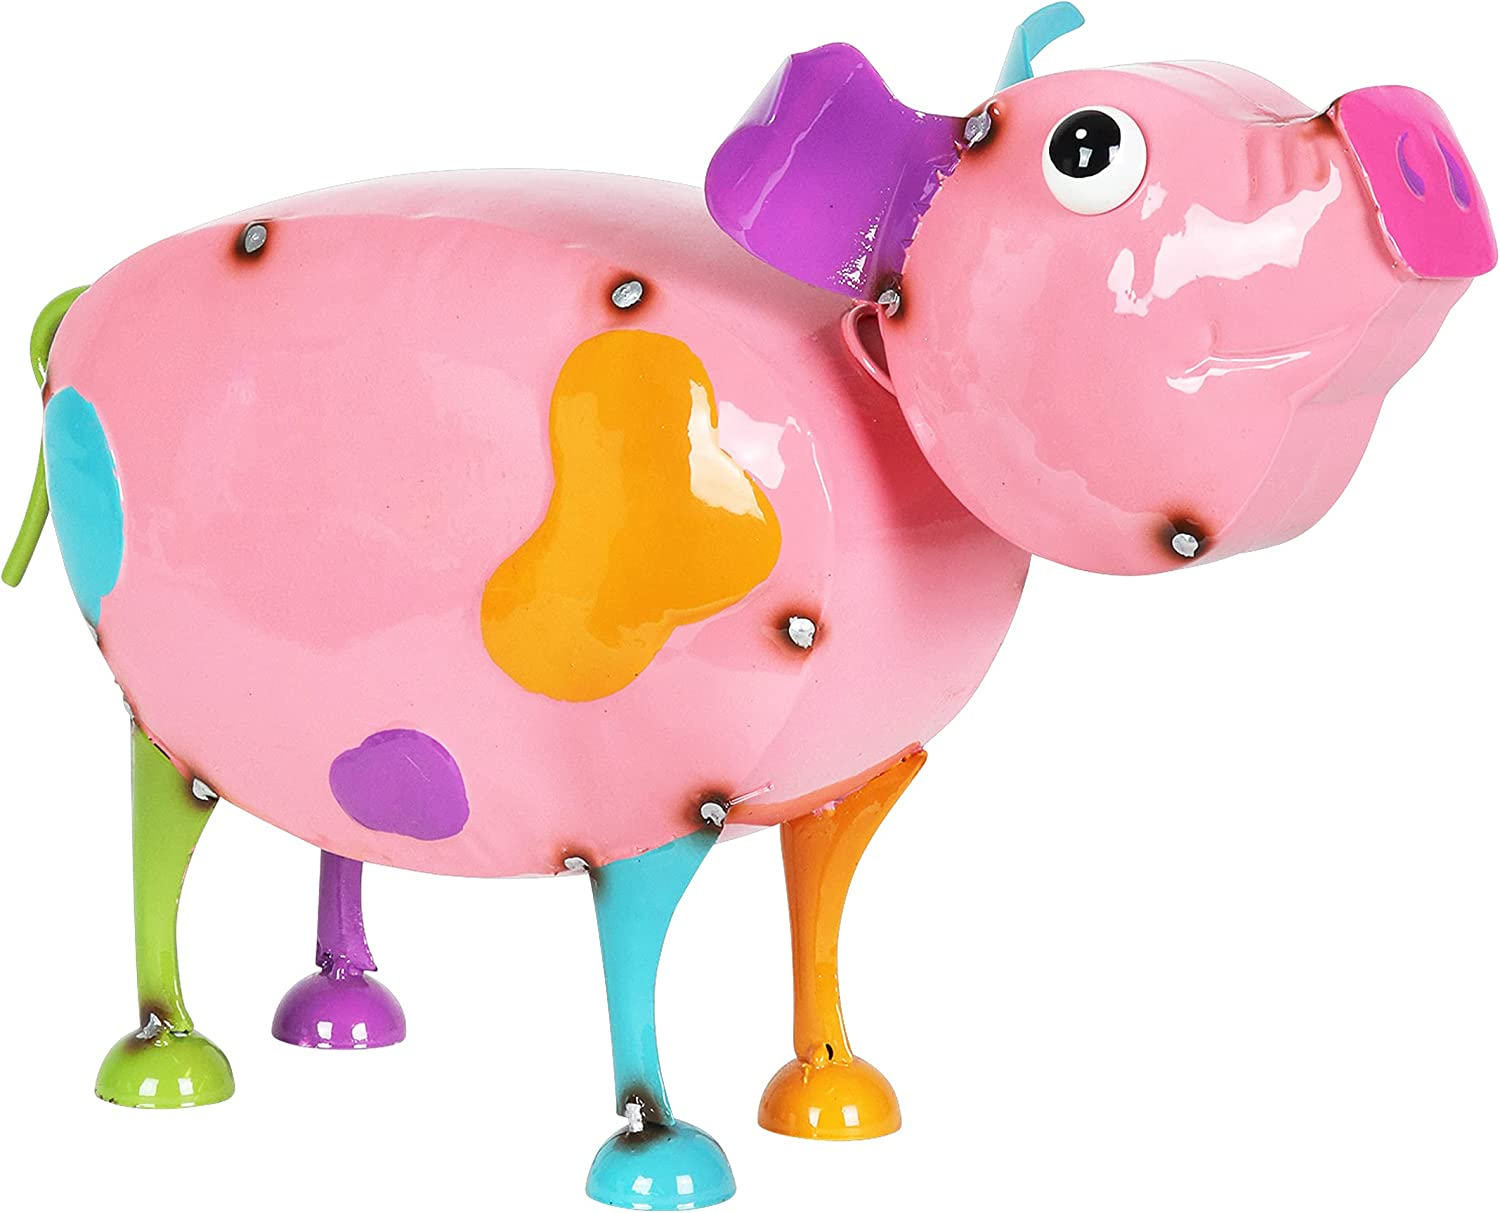 """Exhart Pink Metal Pig Statue – Cute, Hand-Painted Pig Sculpture w/Spring Bobblehead – Durable, Weather Resistant Metal Pig Garden Statue - Pig Yard Decoration for Home & Garden, 15.5"""" L x 6"""" W x 9"""" H"""